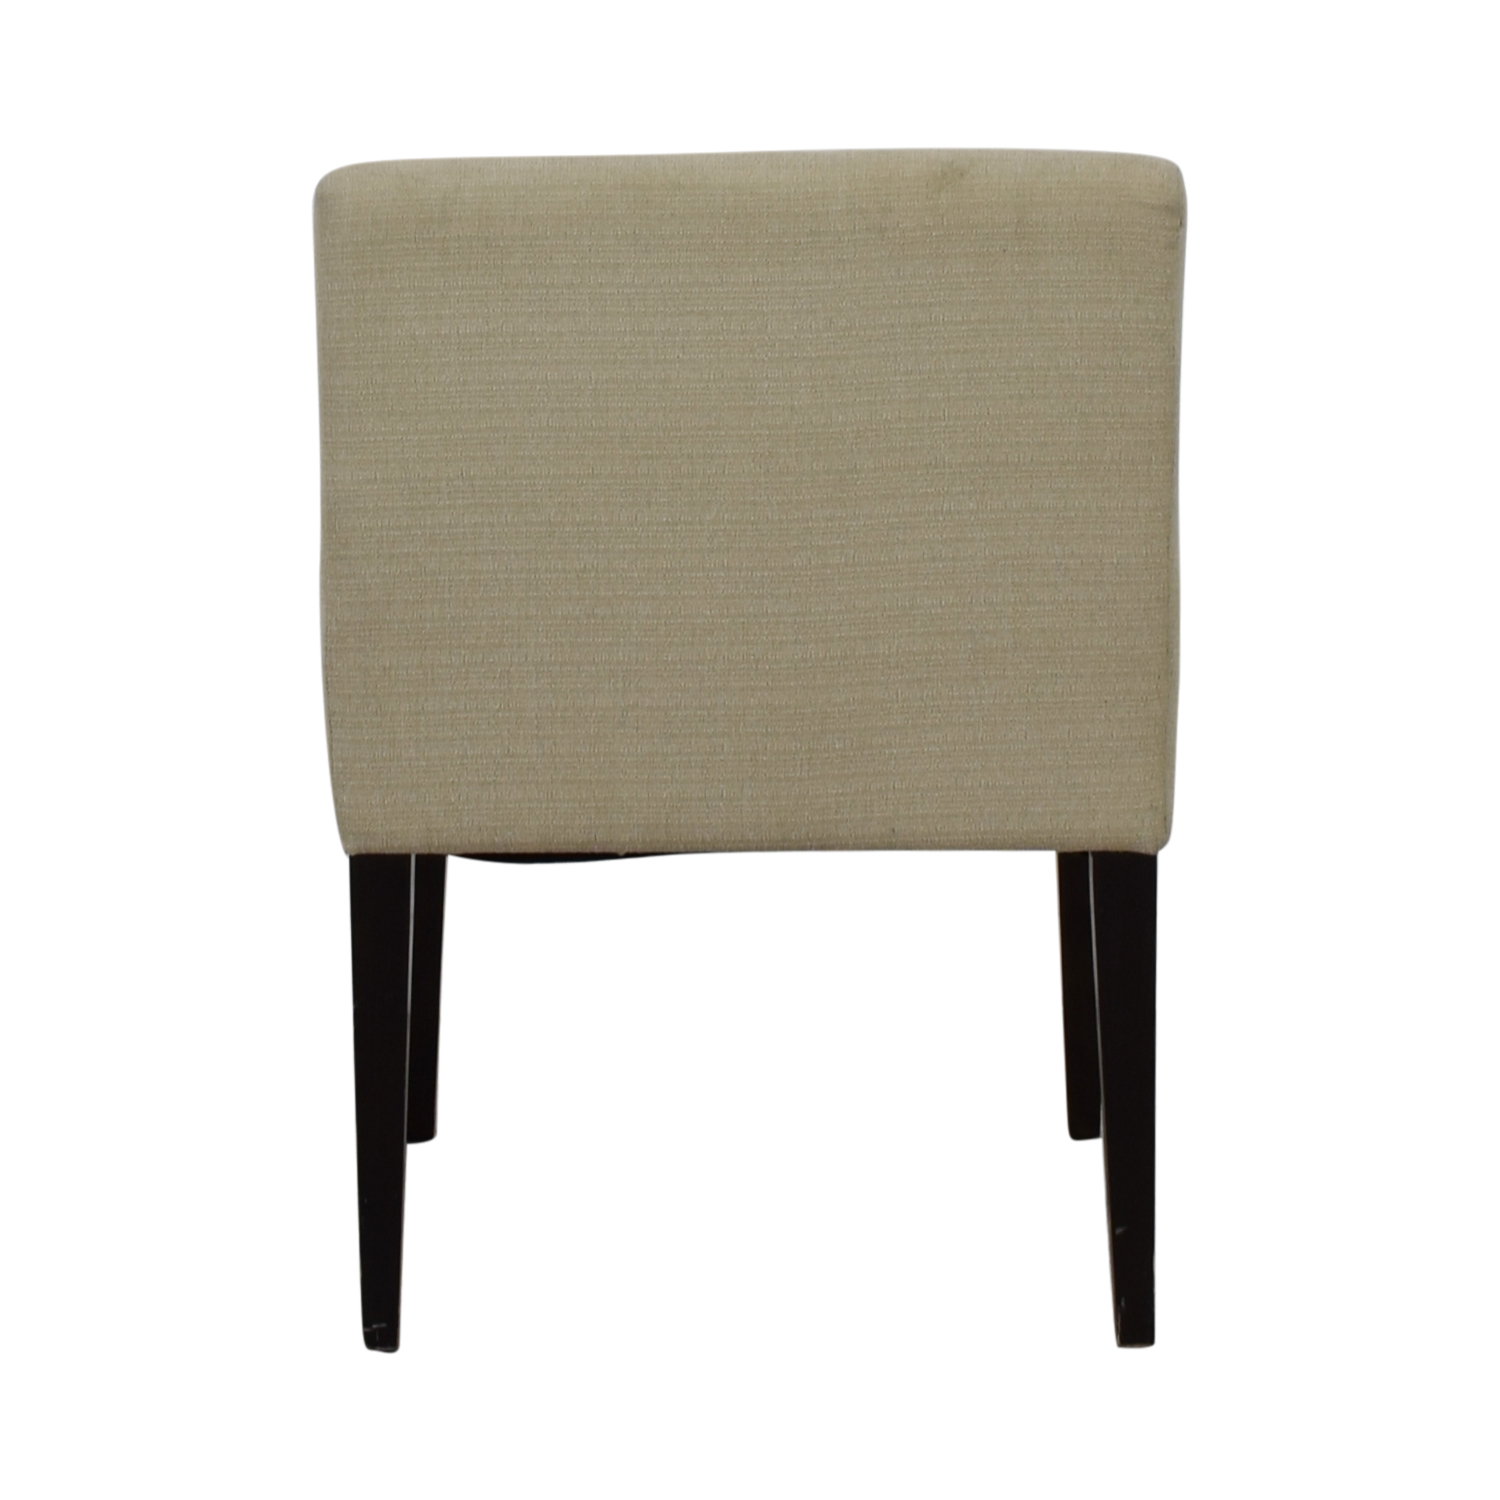 buy West Elm Cream Accent Chair West Elm Accent Chairs